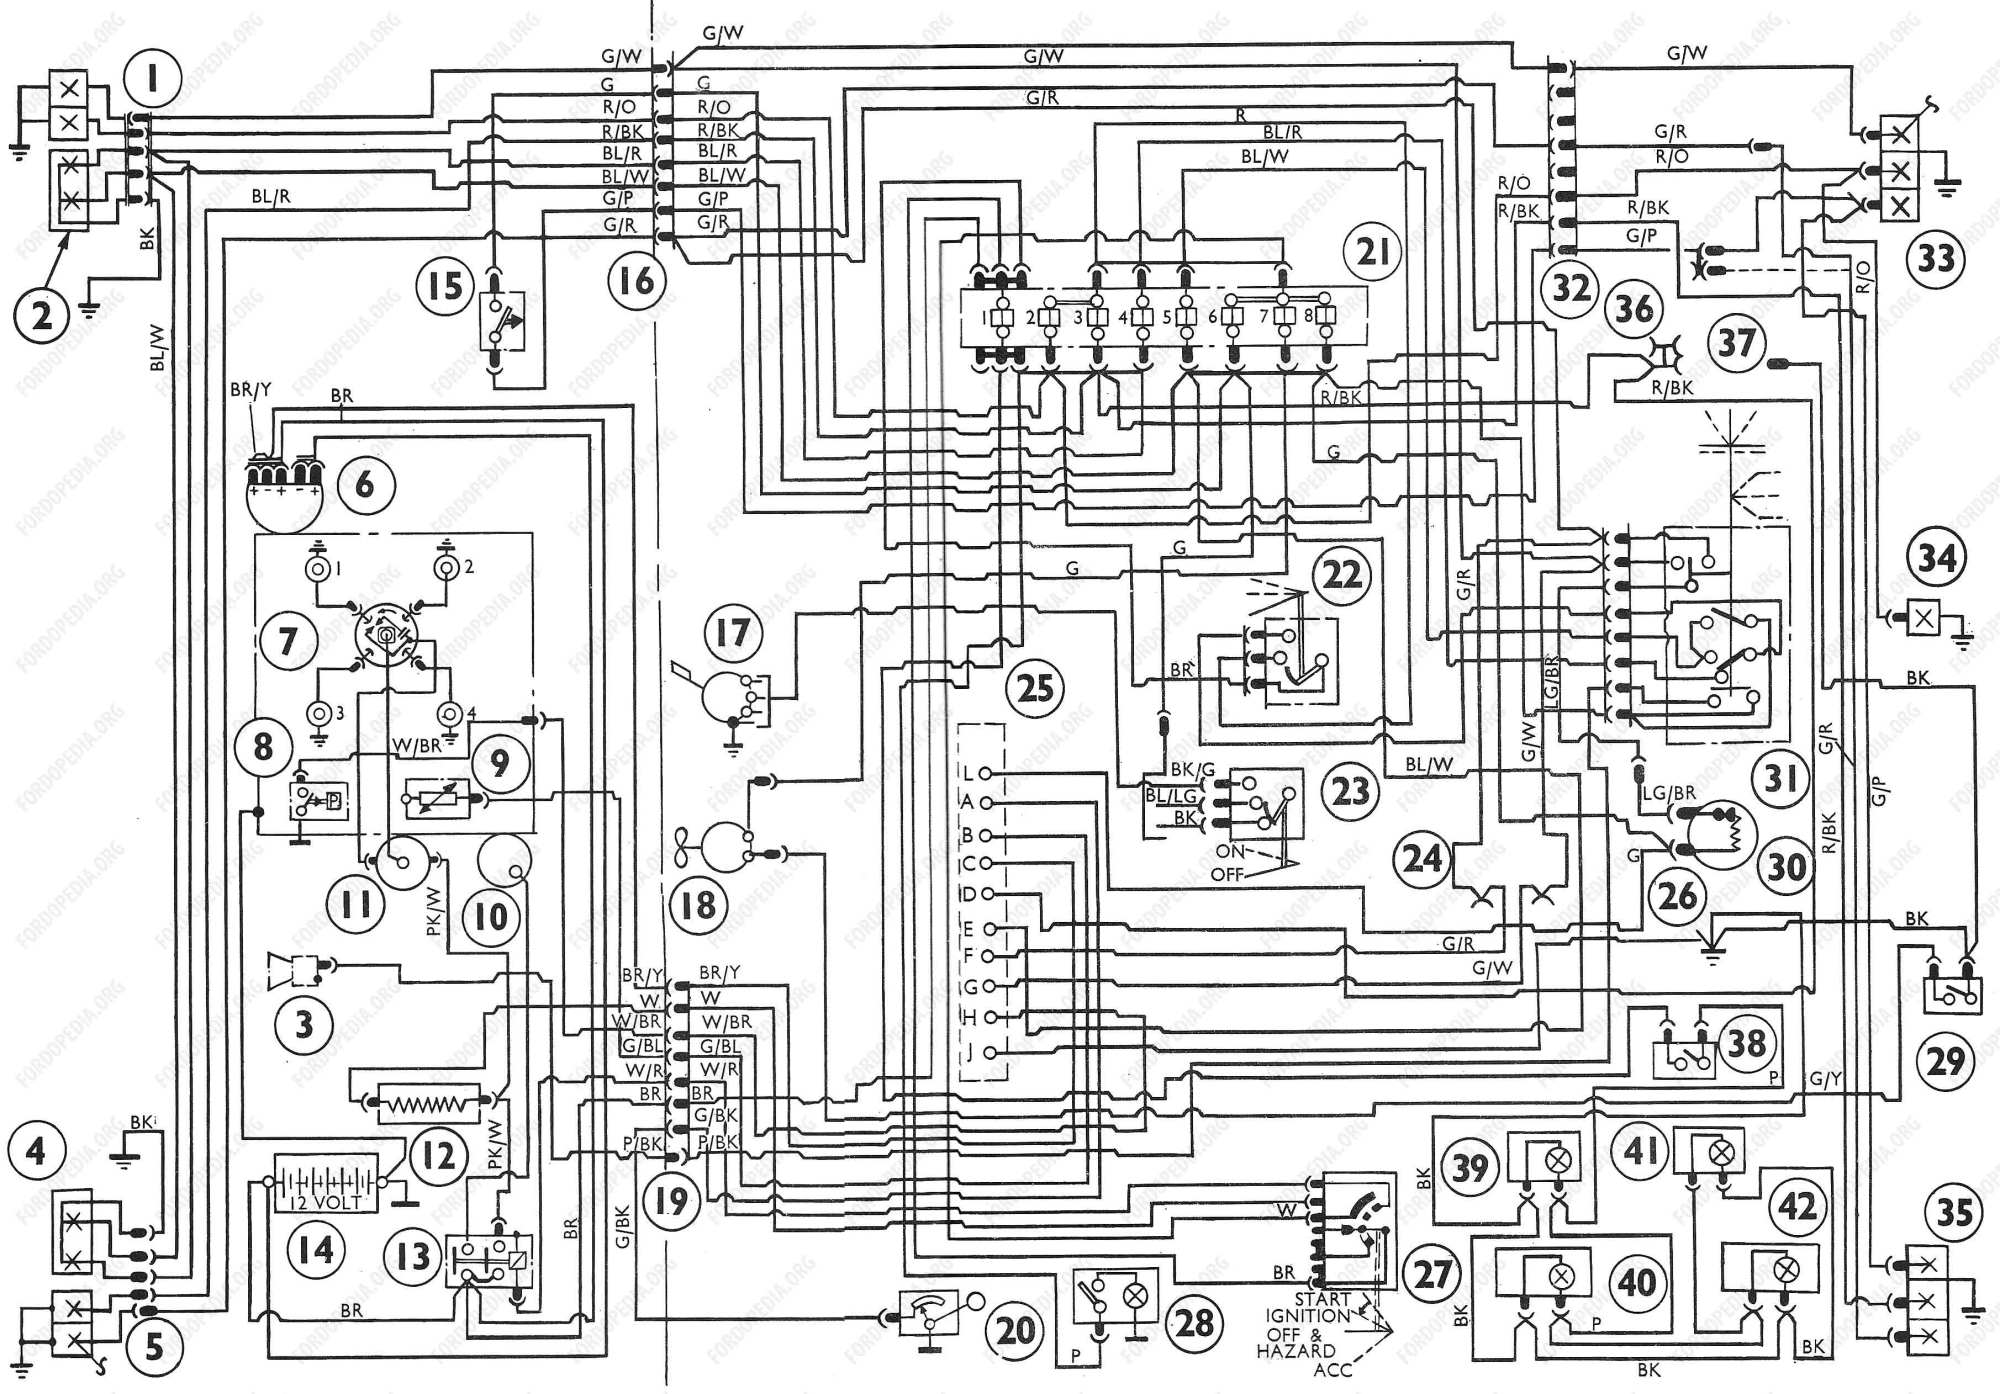 hight resolution of ford 3000 traffic wiring diagram electrical work wiring diagram u2022 ford 5000 tractor wiring harness